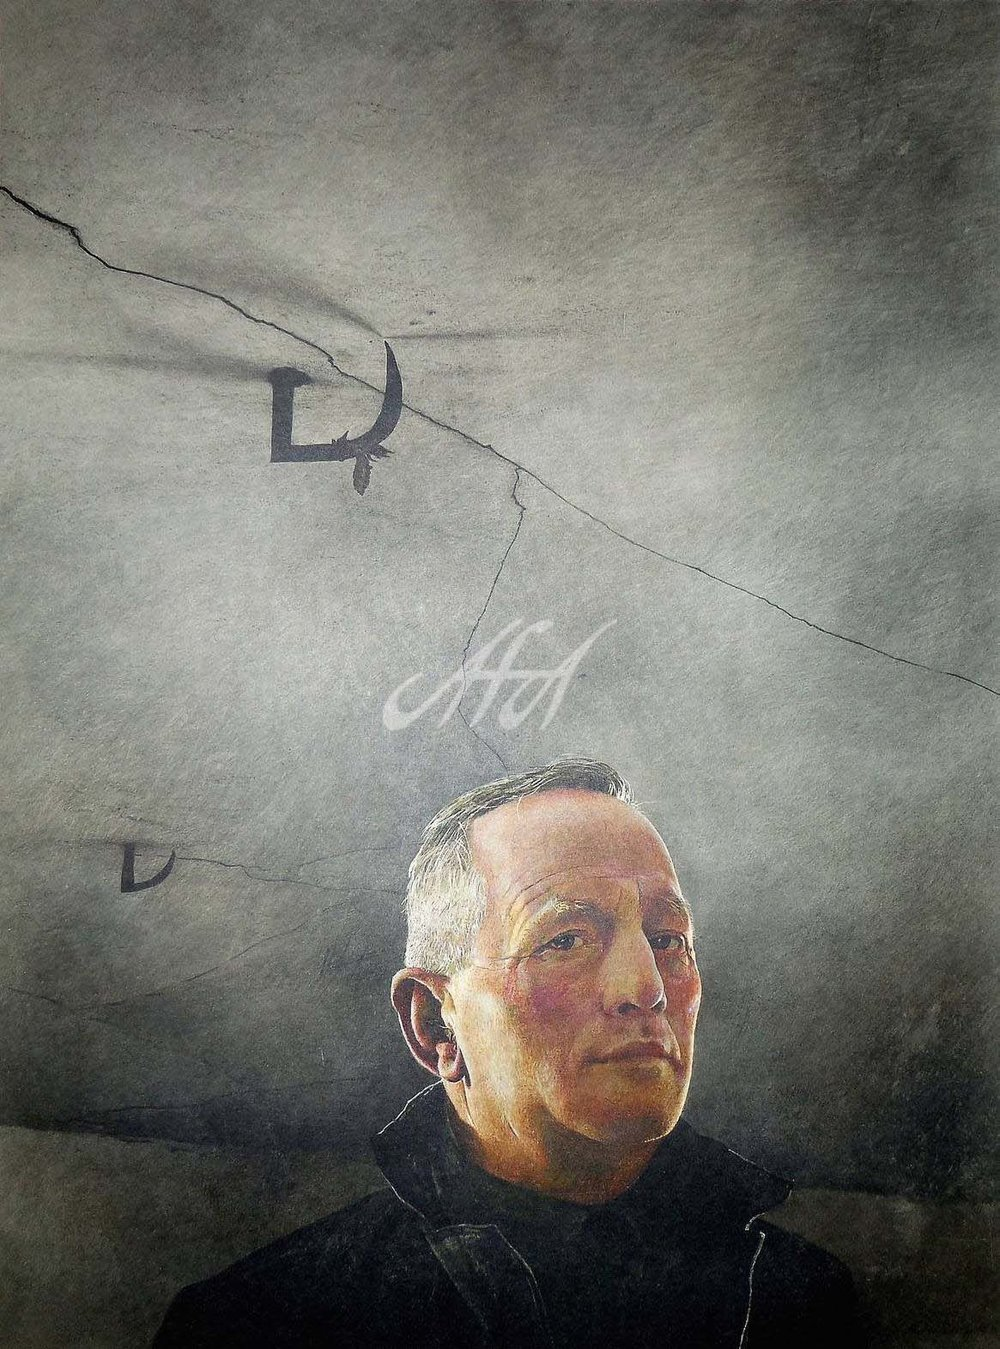 wyeth Karl watermark.jpg